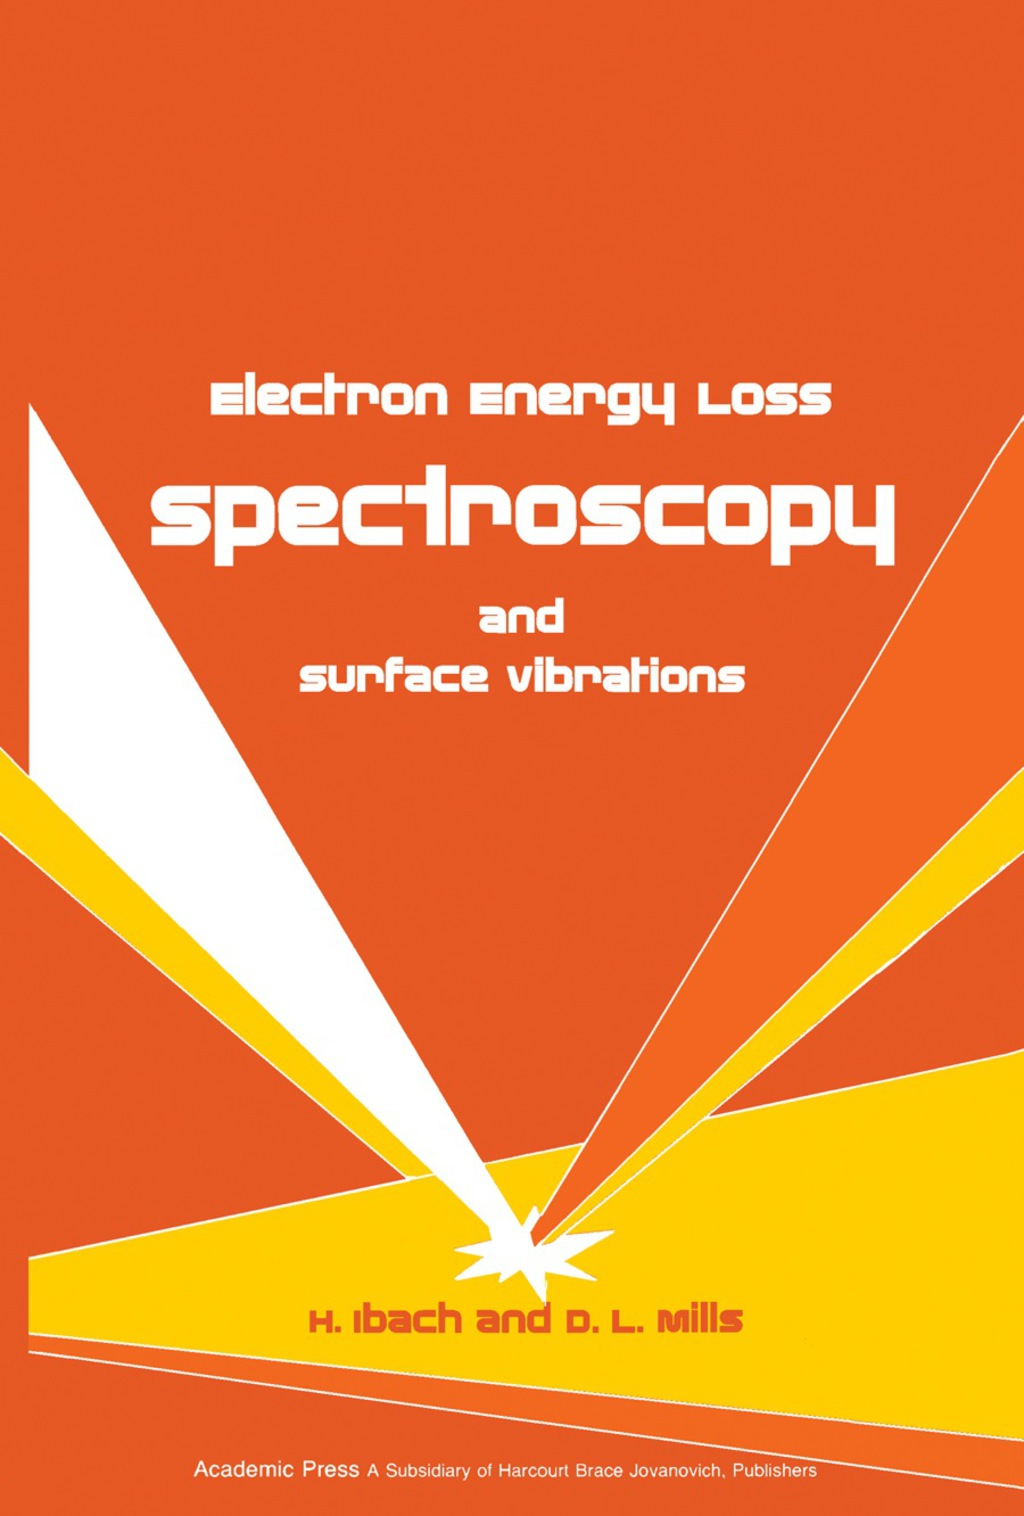 Electron Energy Loss Spectroscopy and Surface Vibrations (ebook) eBooks